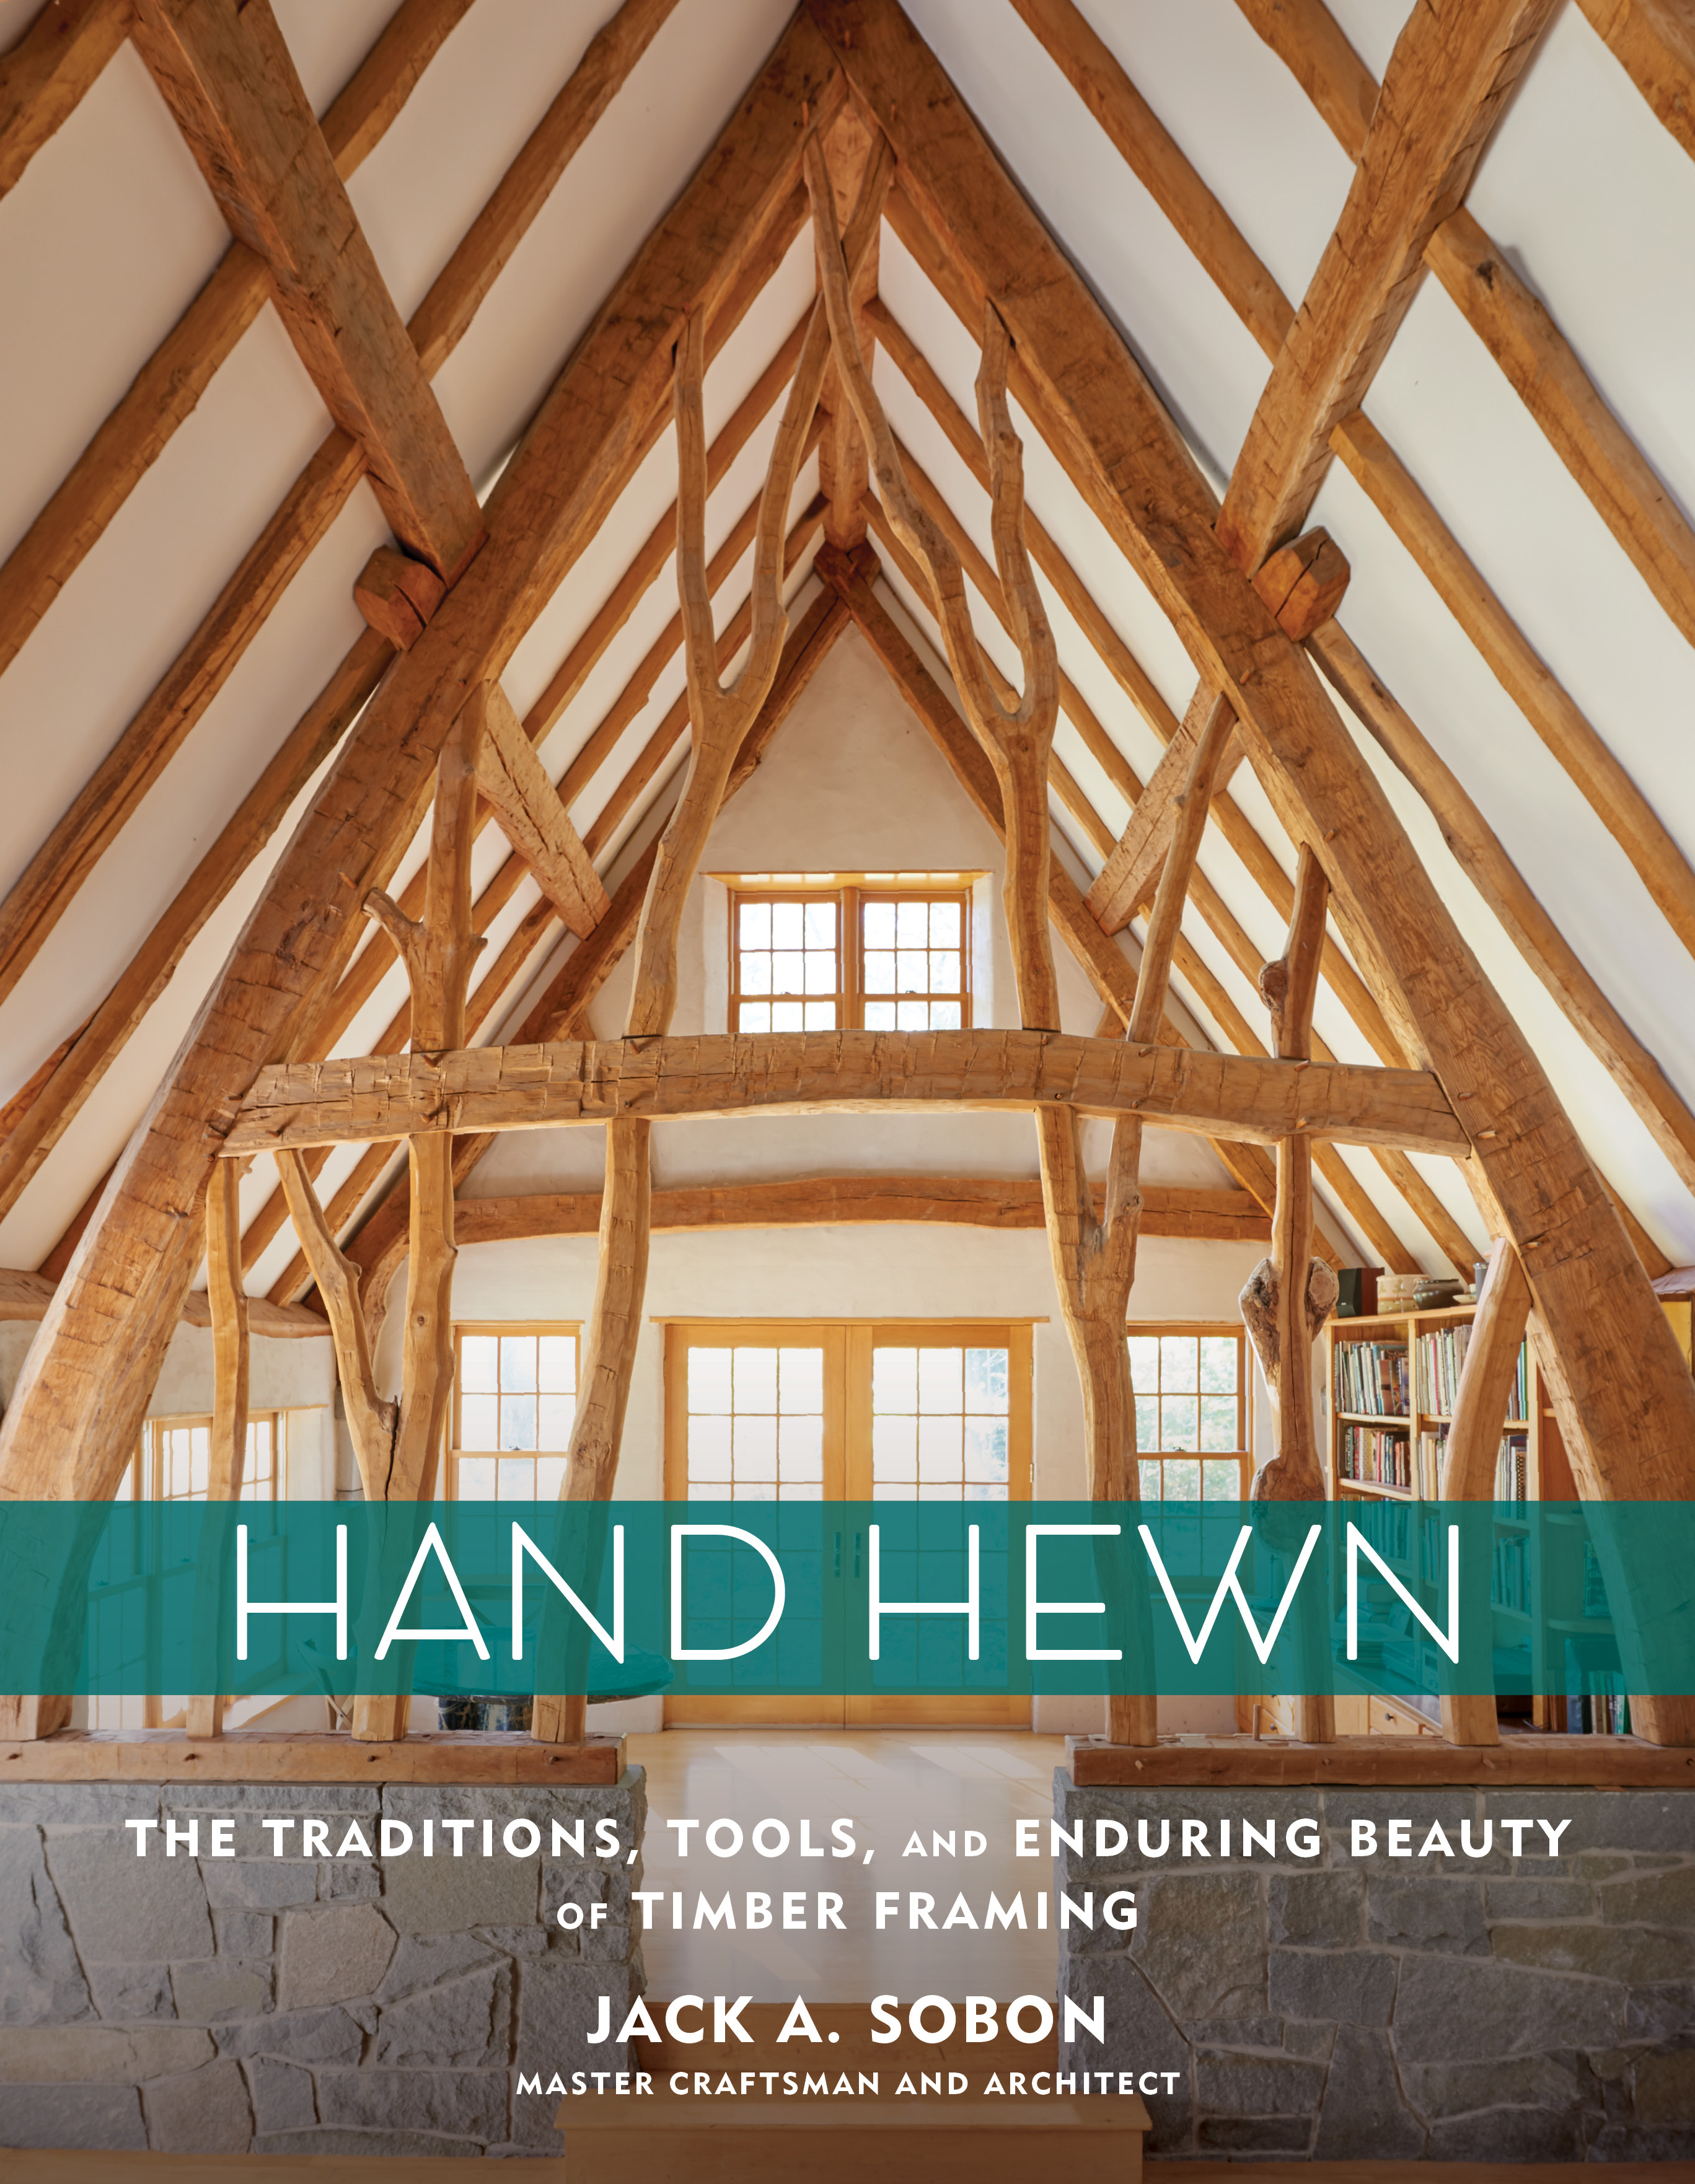 Hand Hewn The Traditions, Tools, and Enduring Beauty of Timber Framing - Jack A. Sobon